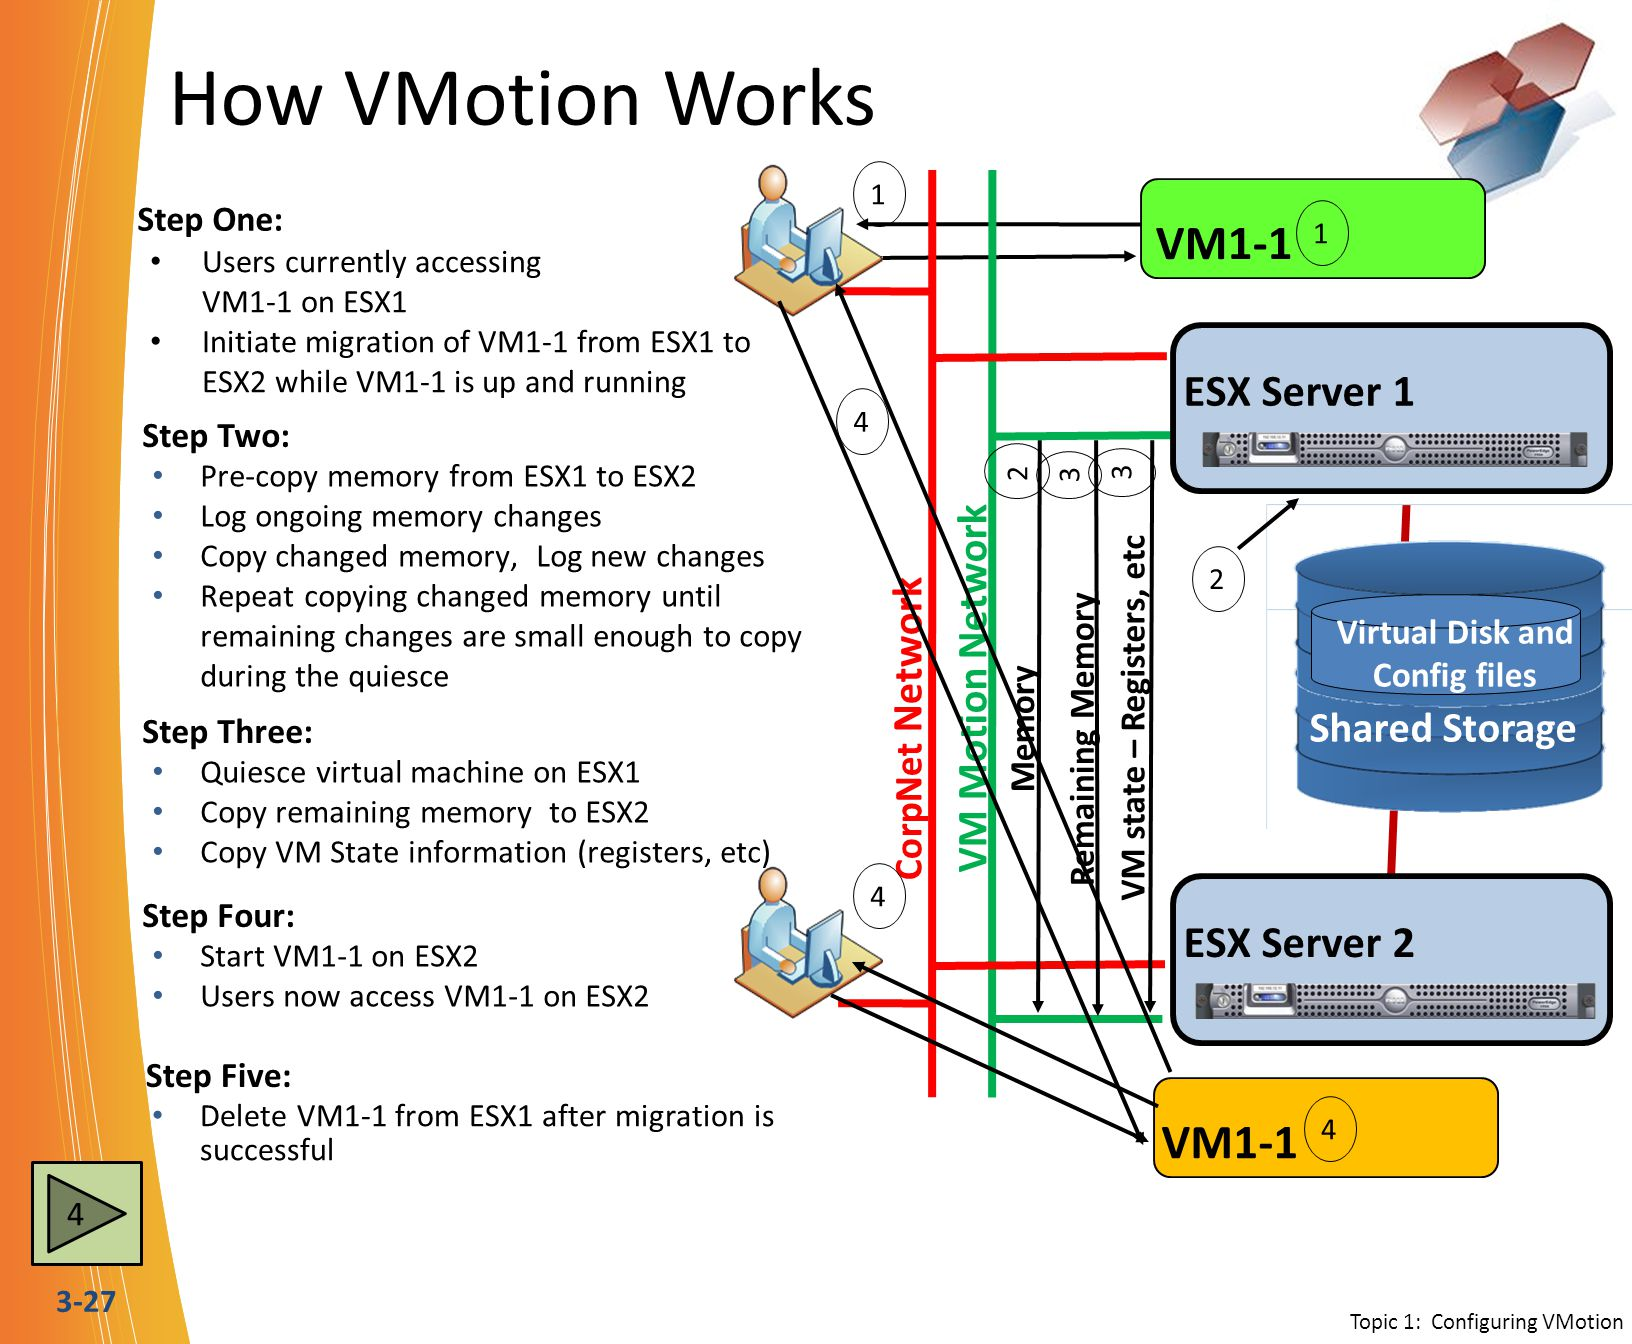 3-27 How VMotion Works Users currently accessing VM1-1 on ESX1 Initiate migration of VM1-1 from ESX1 to ESX2 while VM1-1 is up and running ESX Server 1 Shared Storage Virtual Disk and Config files ESX Server 2 VM1-1 CorpNet Network VM Motion Network ESX Server 1 Step One: Step Two: Pre-copy memory from ESX1 to ESX2 Log ongoing memory changes Copy changed memory, Log new changes Repeat copying changed memory until remaining changes are small enough to copy during the quiesce Quiesce virtual machine on ESX1 Copy remaining memory to ESX2 Copy VM State information (registers, etc) Step Three: Step Four: Start VM1-1 on ESX2 Users now access VM1-1 on ESX2 Step Five: Delete VM1-1 from ESX1 after migration is successful 1 1 VM1-1 4 2 Memory 2 Remaining Memory 3 4 4 3 Topic 1: Configuring VMotion 4 VM state – Registers, etc